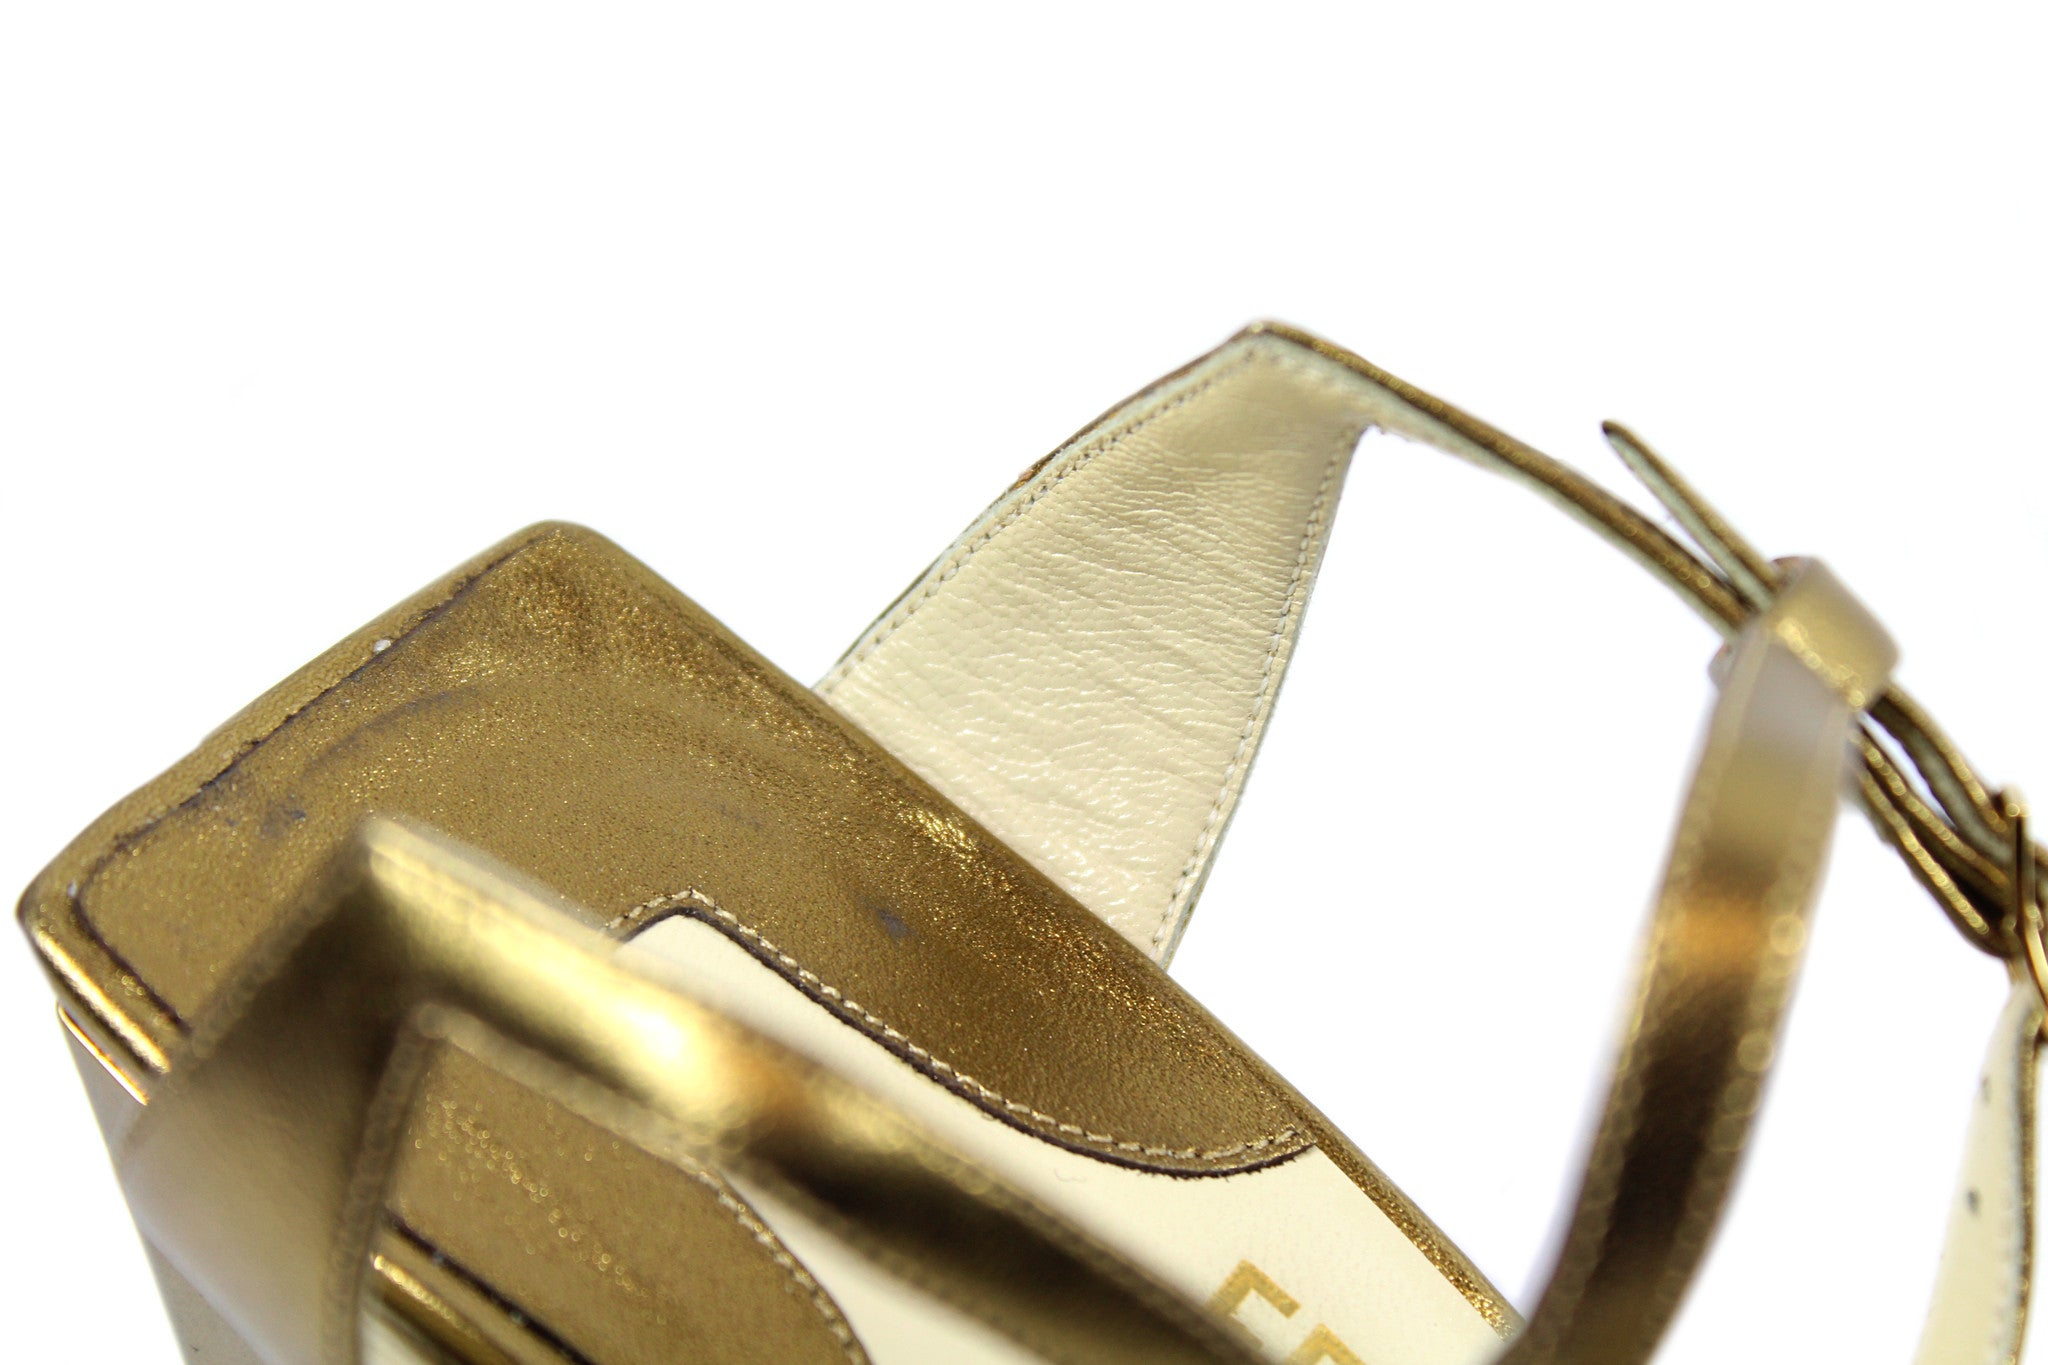 Salvatore Ferragamo 1930s Gold Pyramid Sandals (Size 6) - Encore Consignment - 9